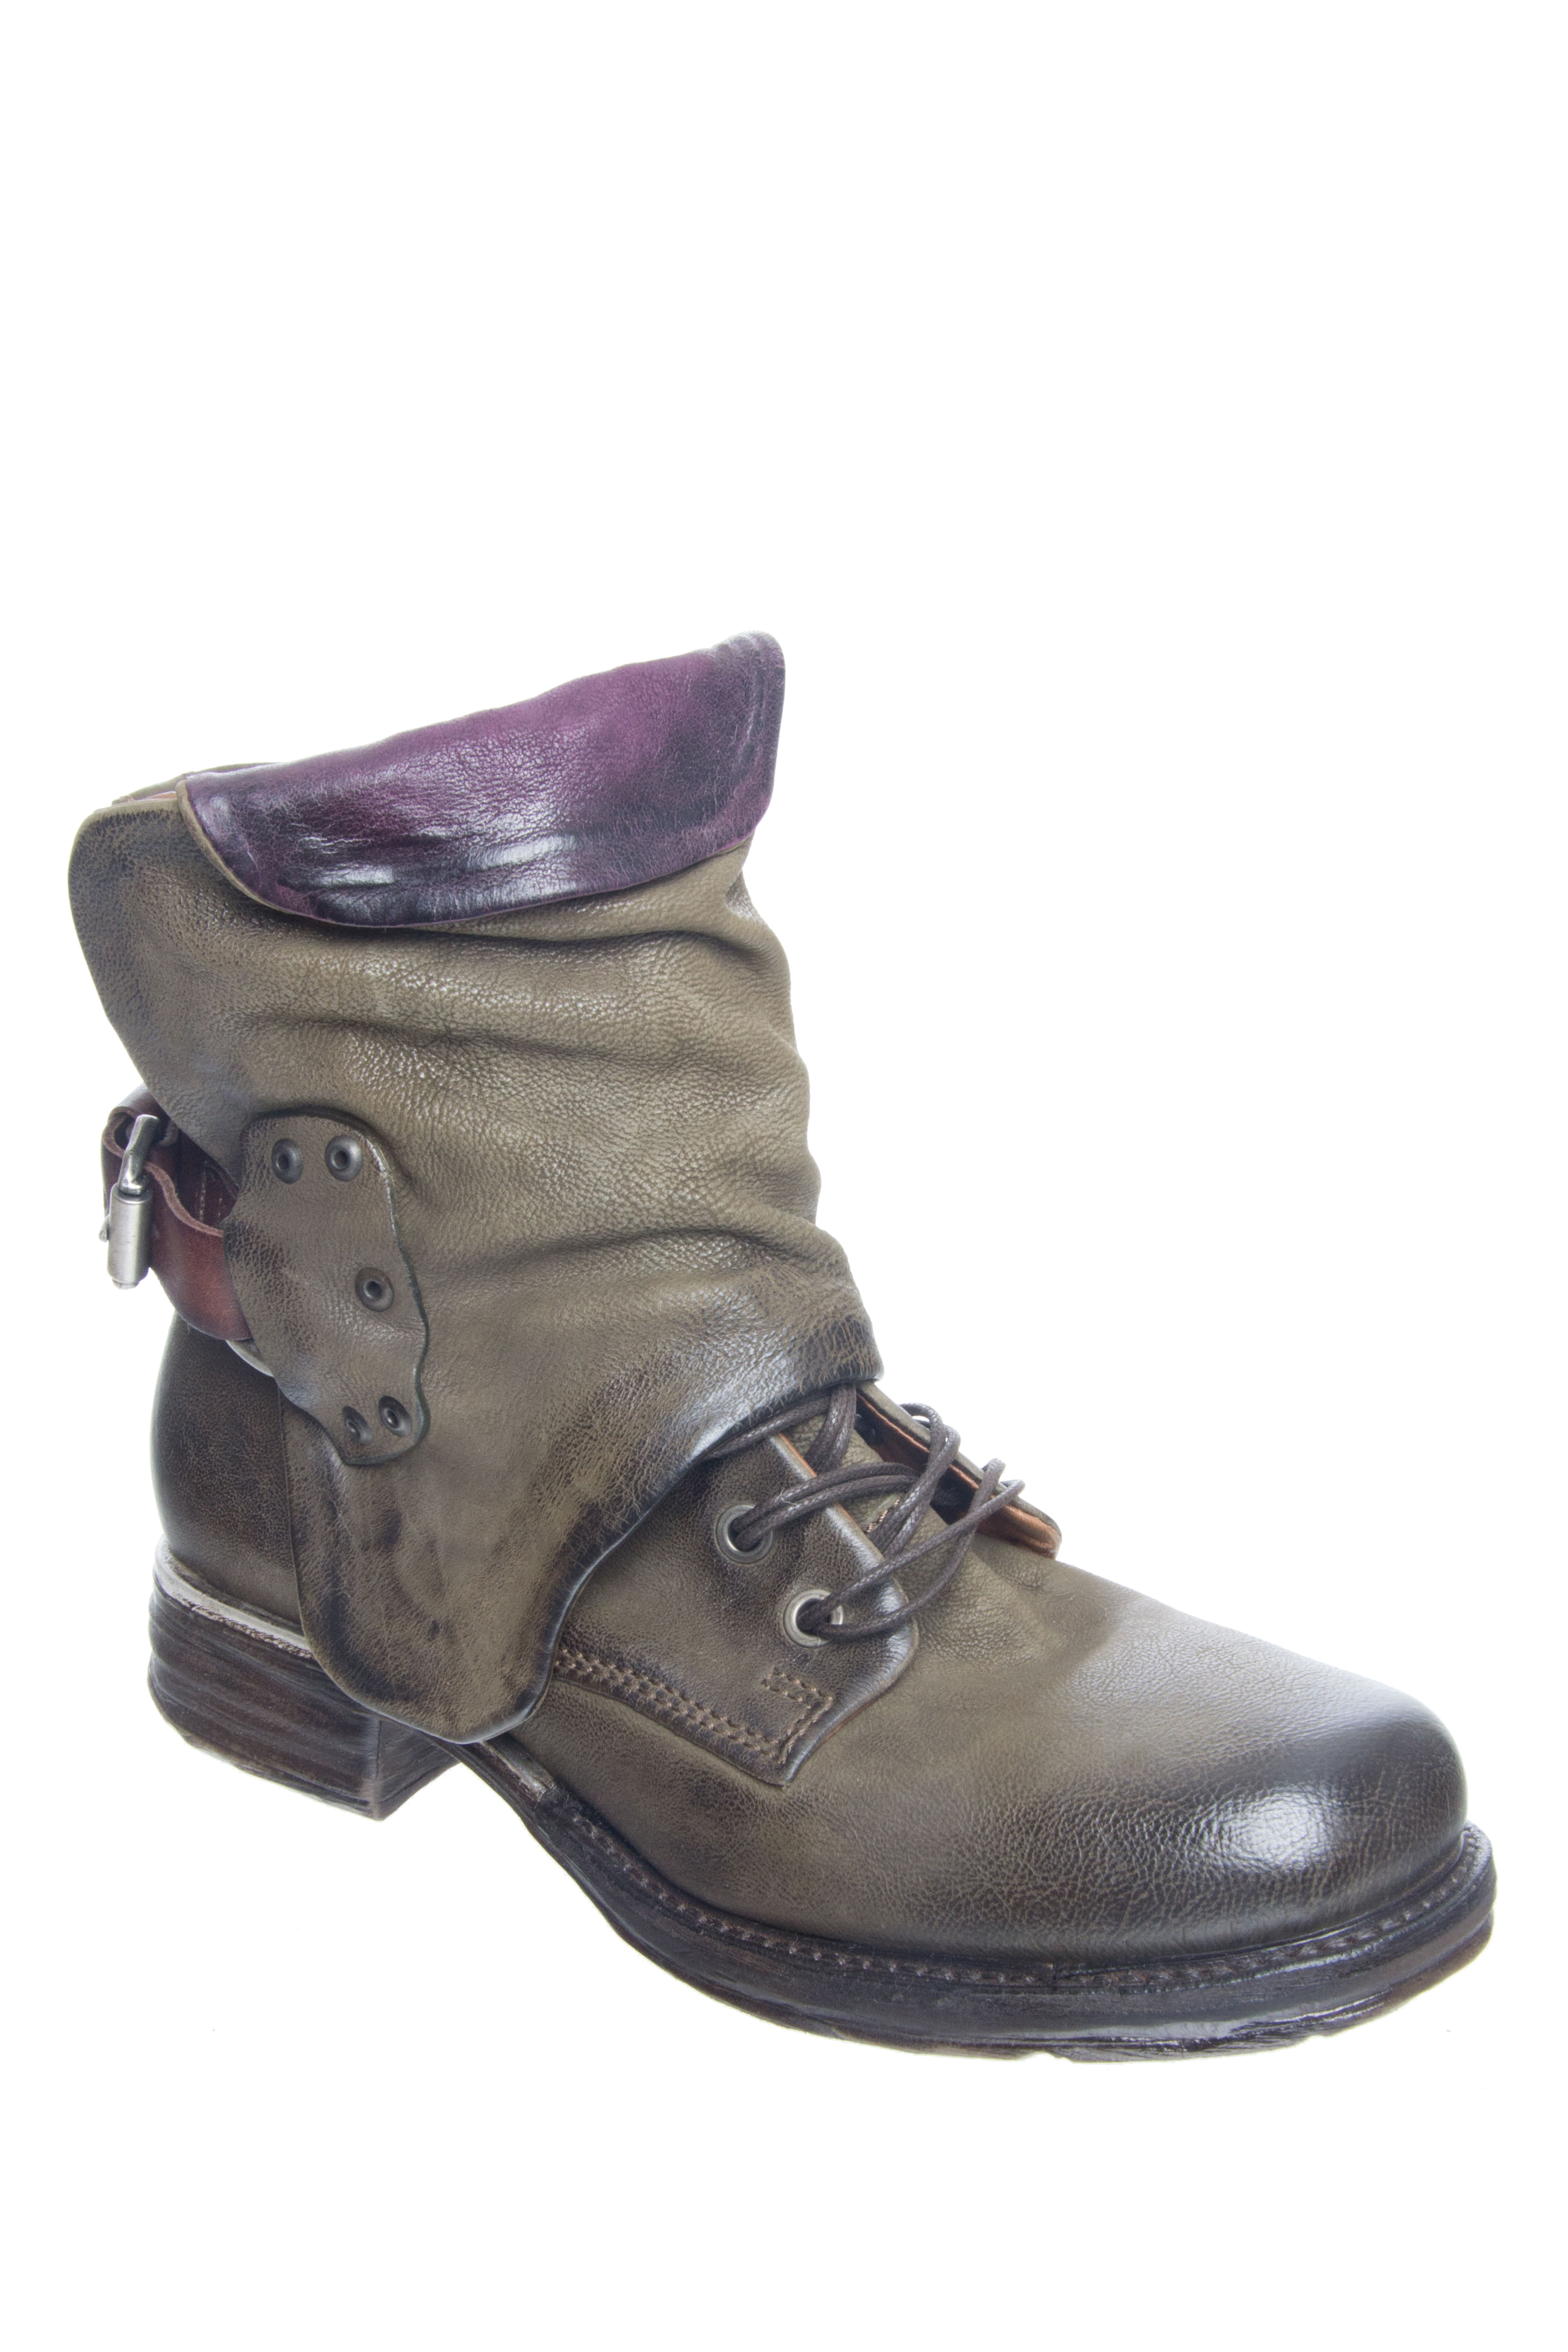 A.S.98 Simon Low Heel Boots - Loden